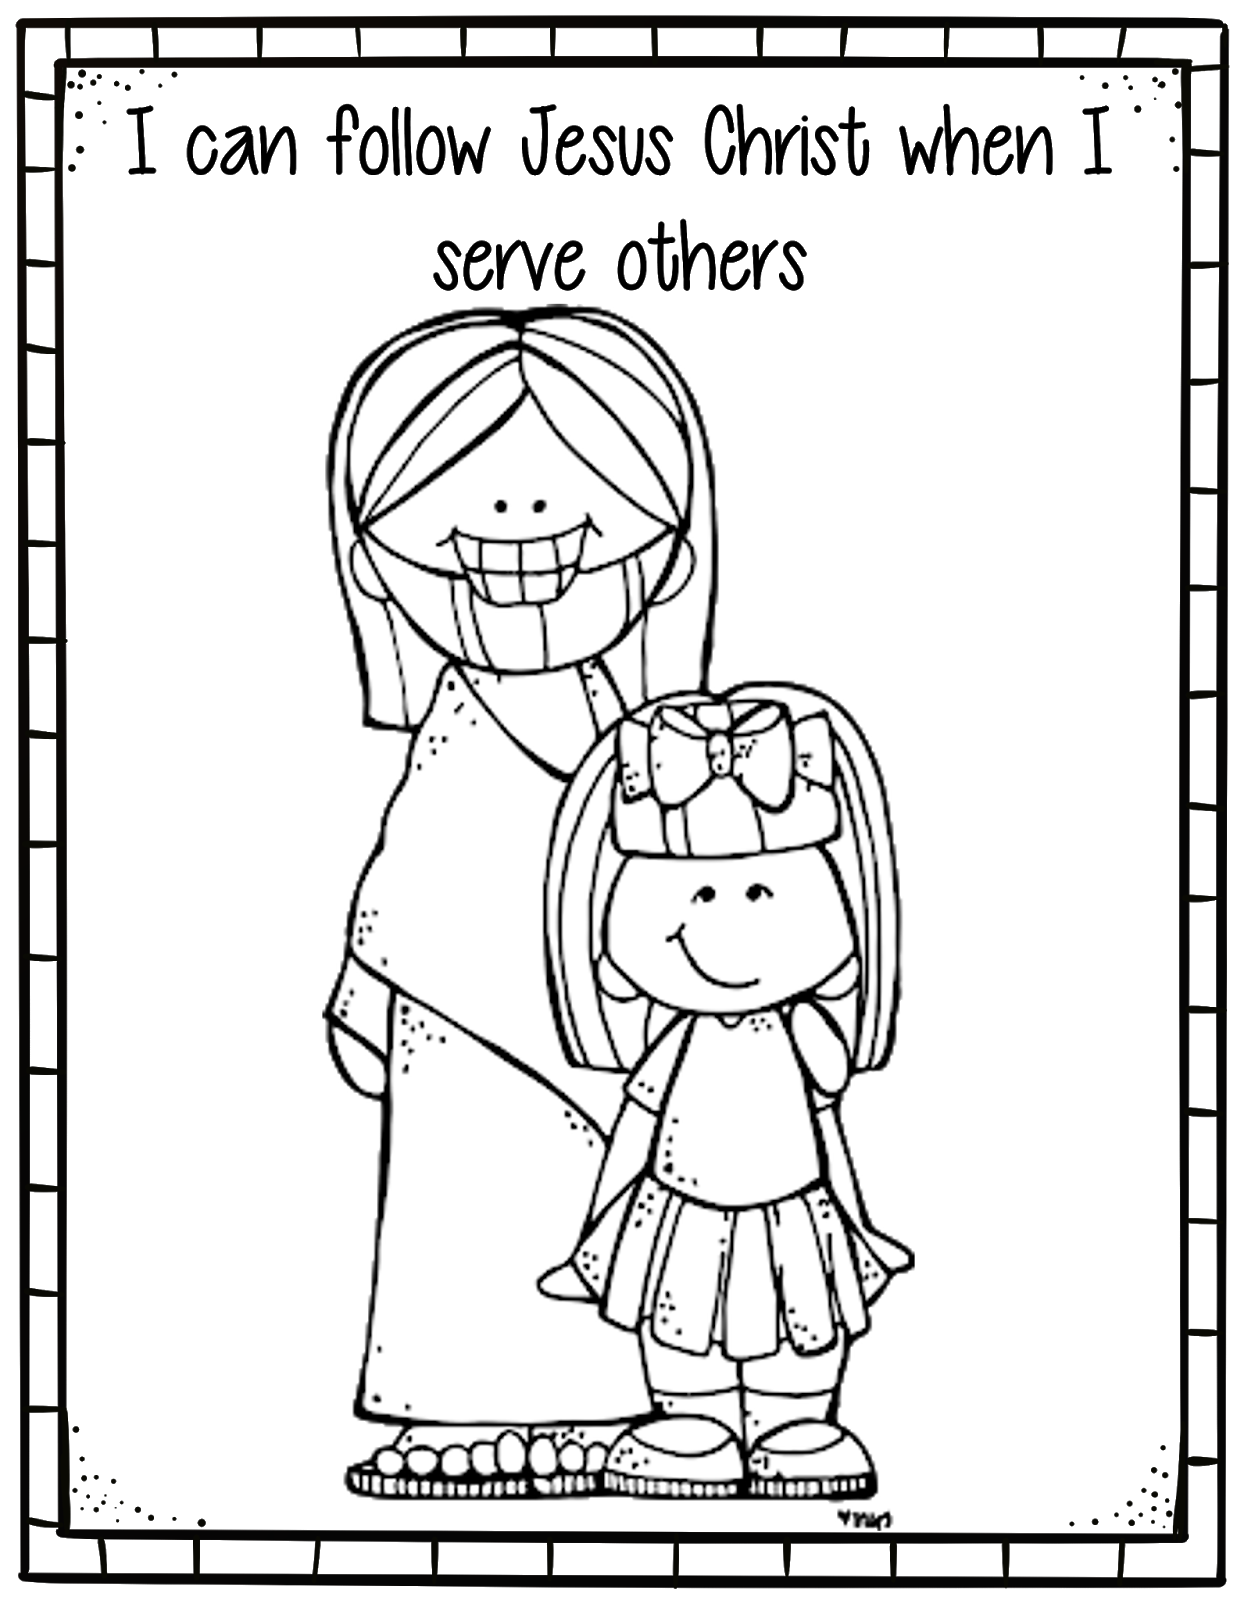 helping others coloring pages helping others coloring pages sketch coloring page helping coloring others pages